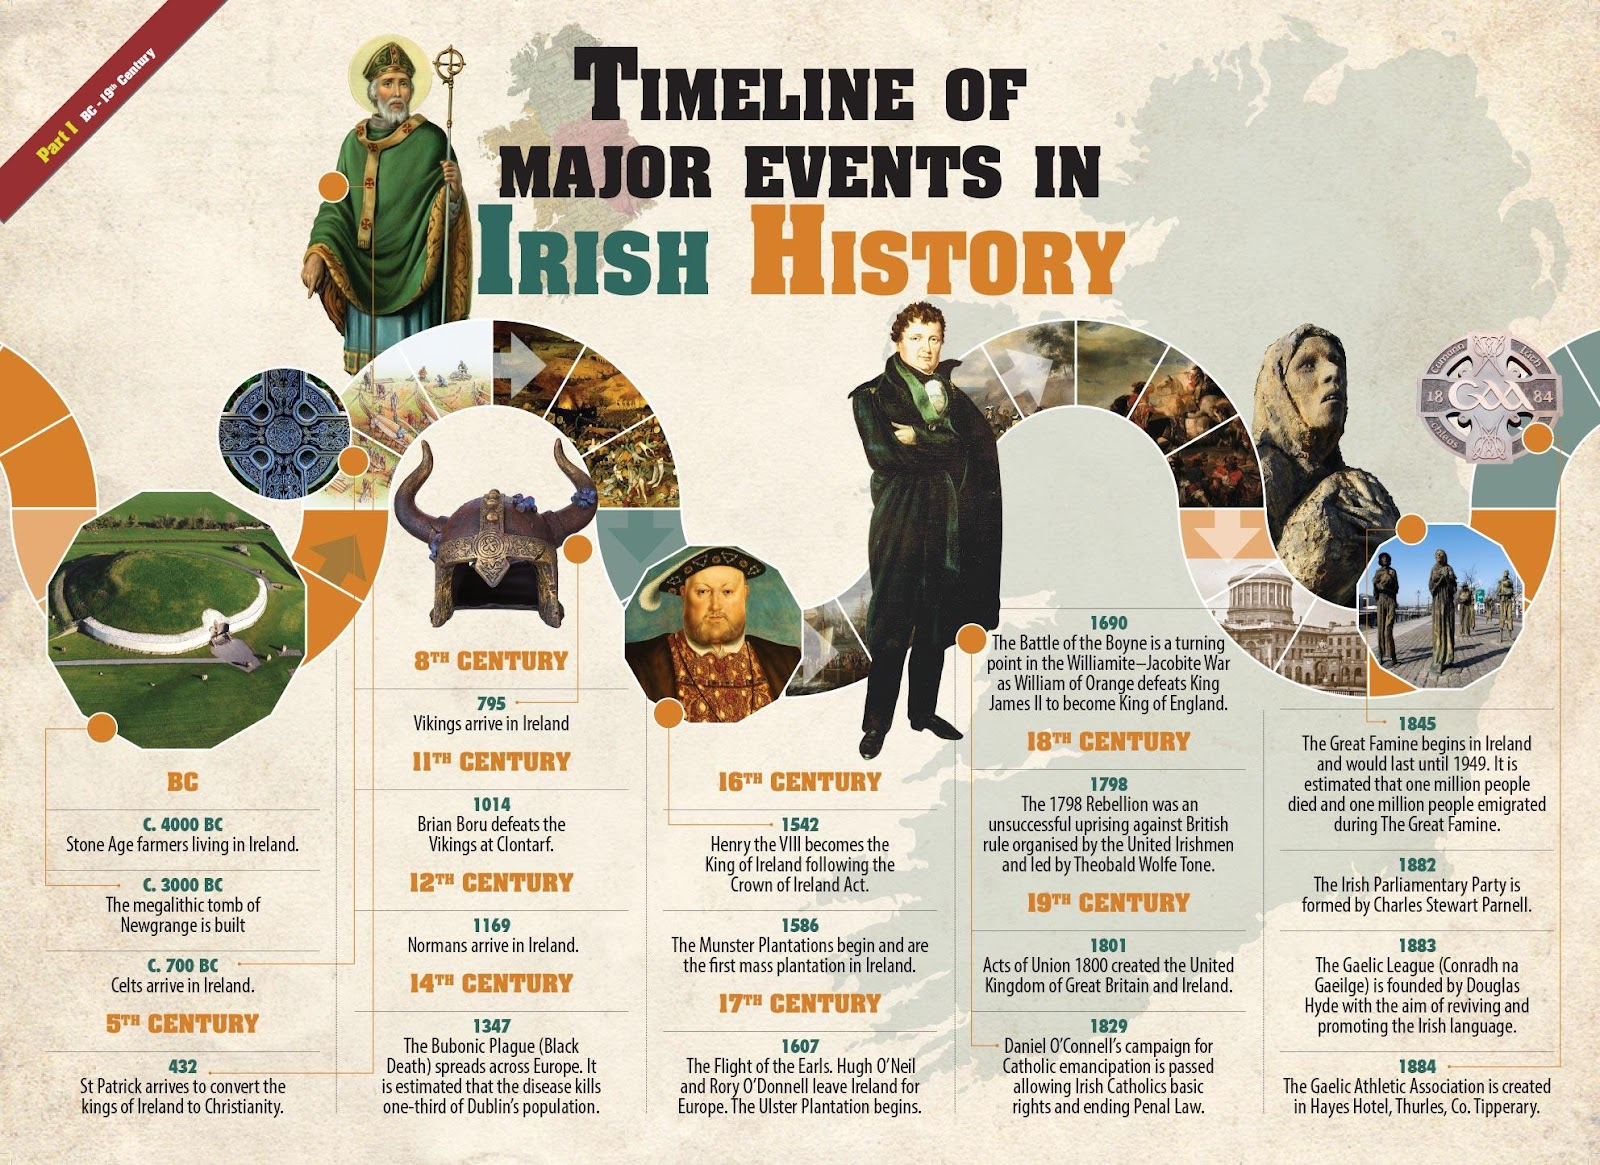 H:\IRELAND\images\timeline-part1.jpg